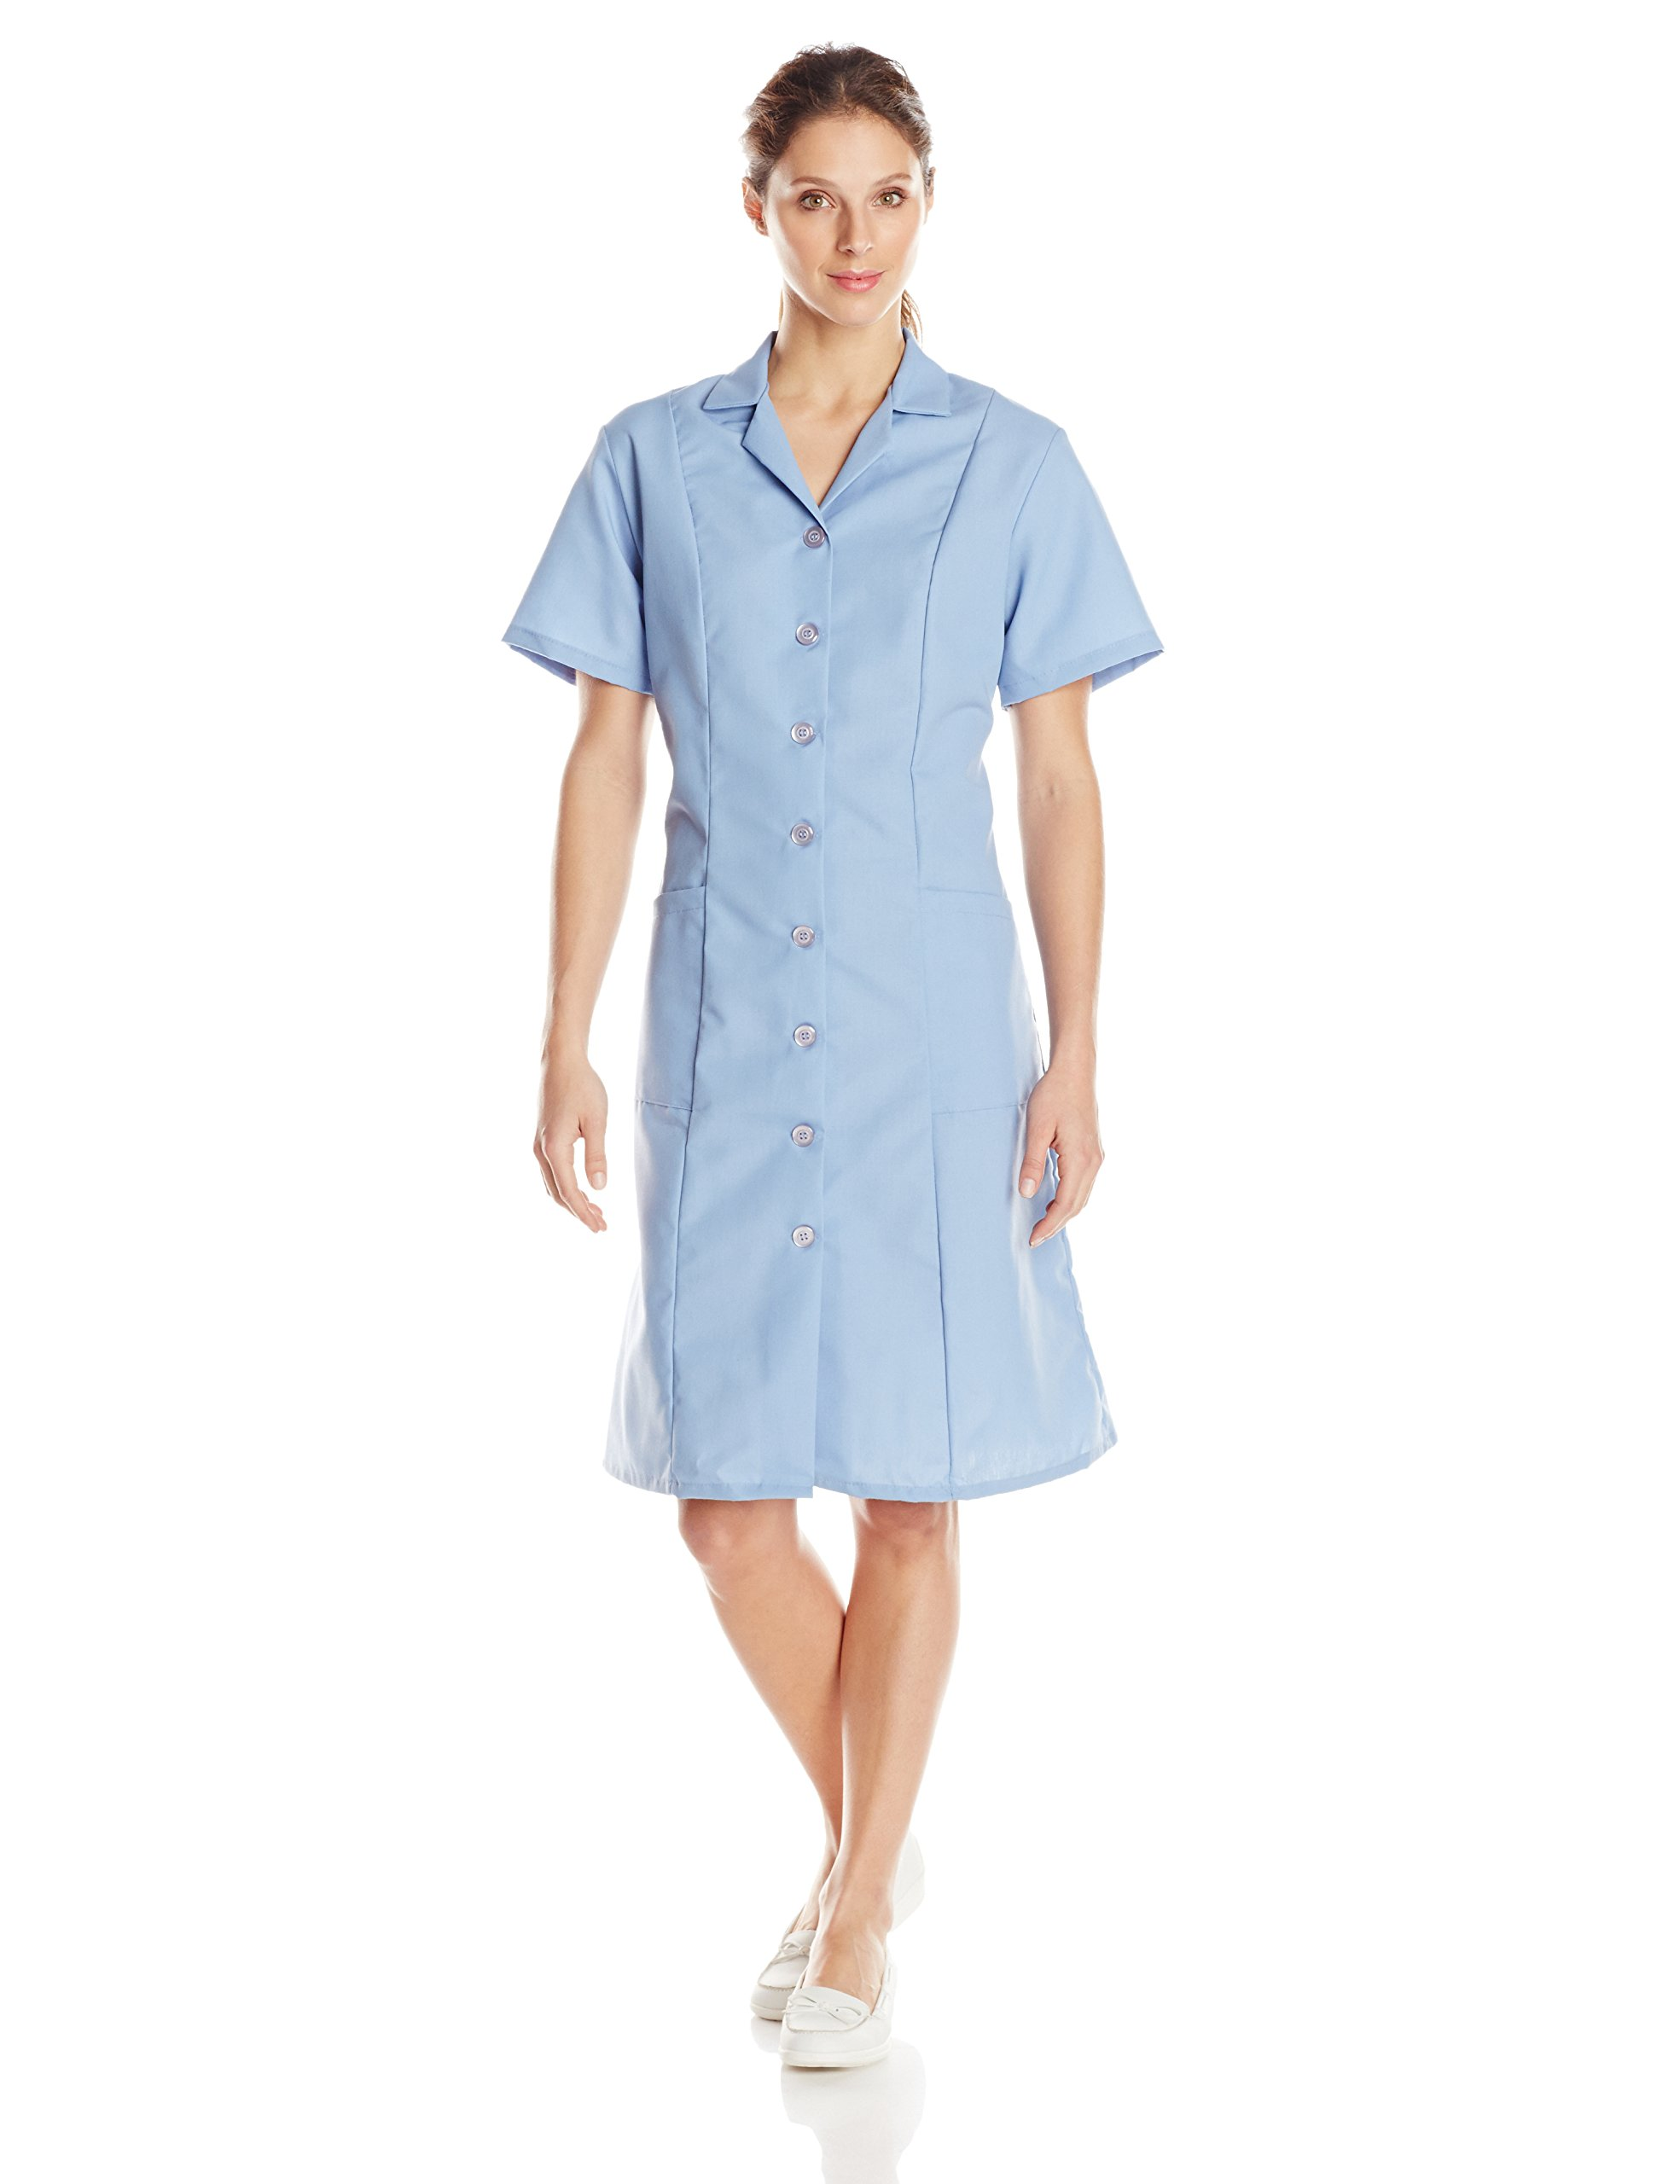 Housekeeping Uniforms: Amazon.com